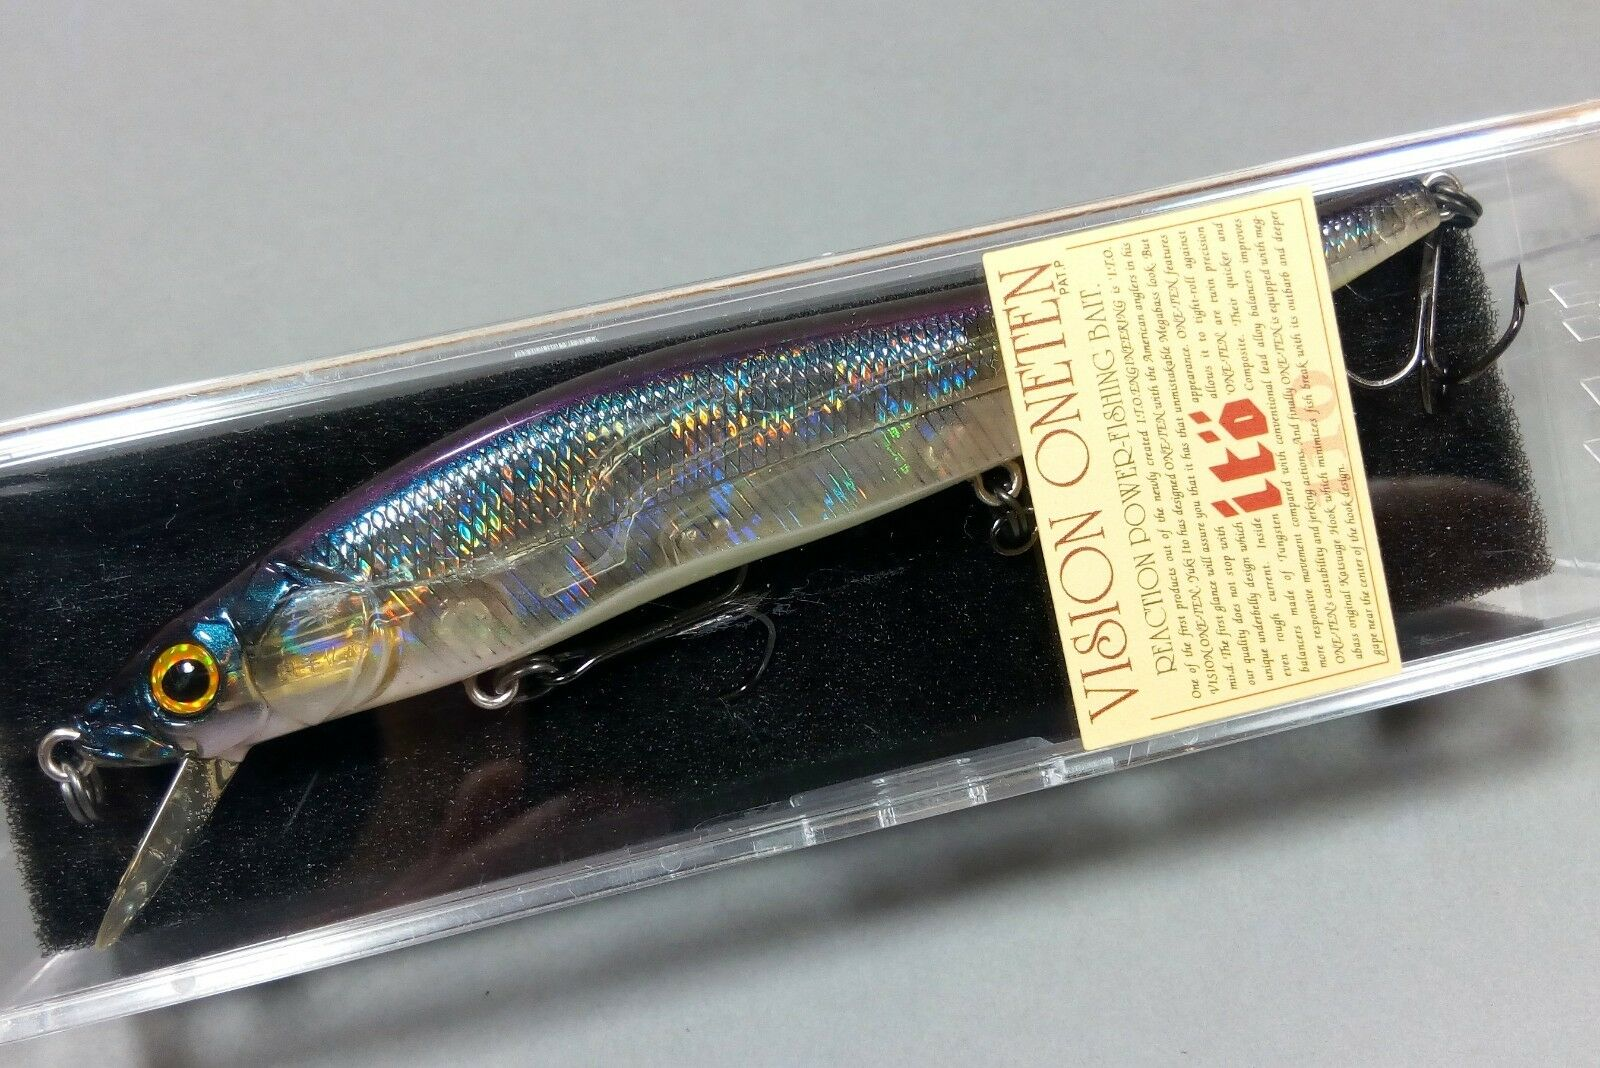 Megabass Vision  110 OneTen = GP IL CHART TAIL 2001 = Straight Eyes = NIB  shop clearance